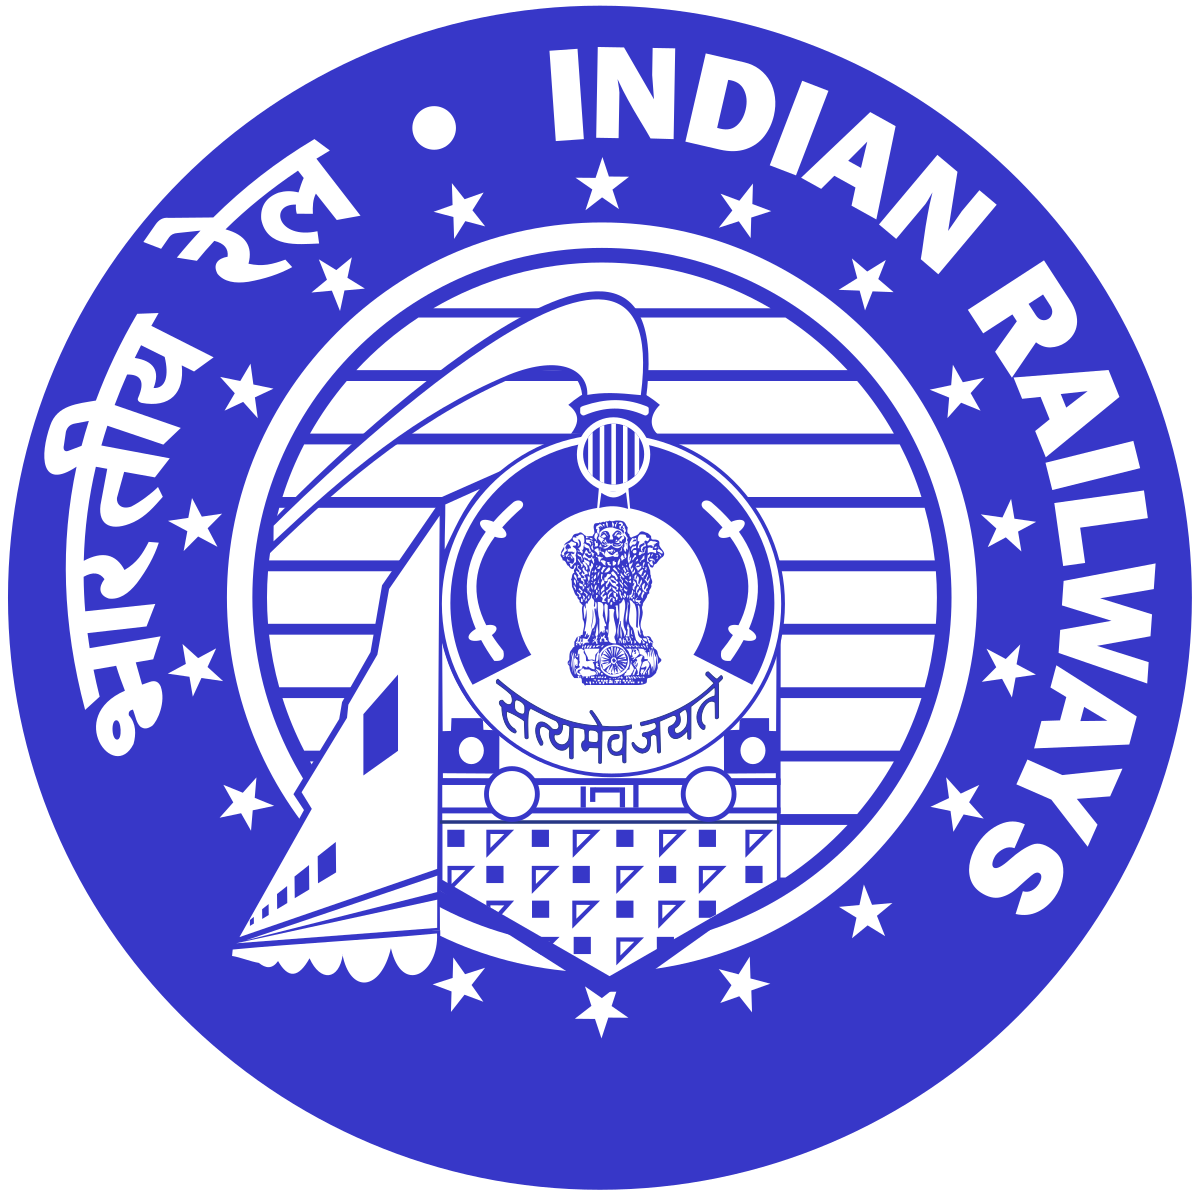 https://www.cayaconstructs.com/Indian Railway